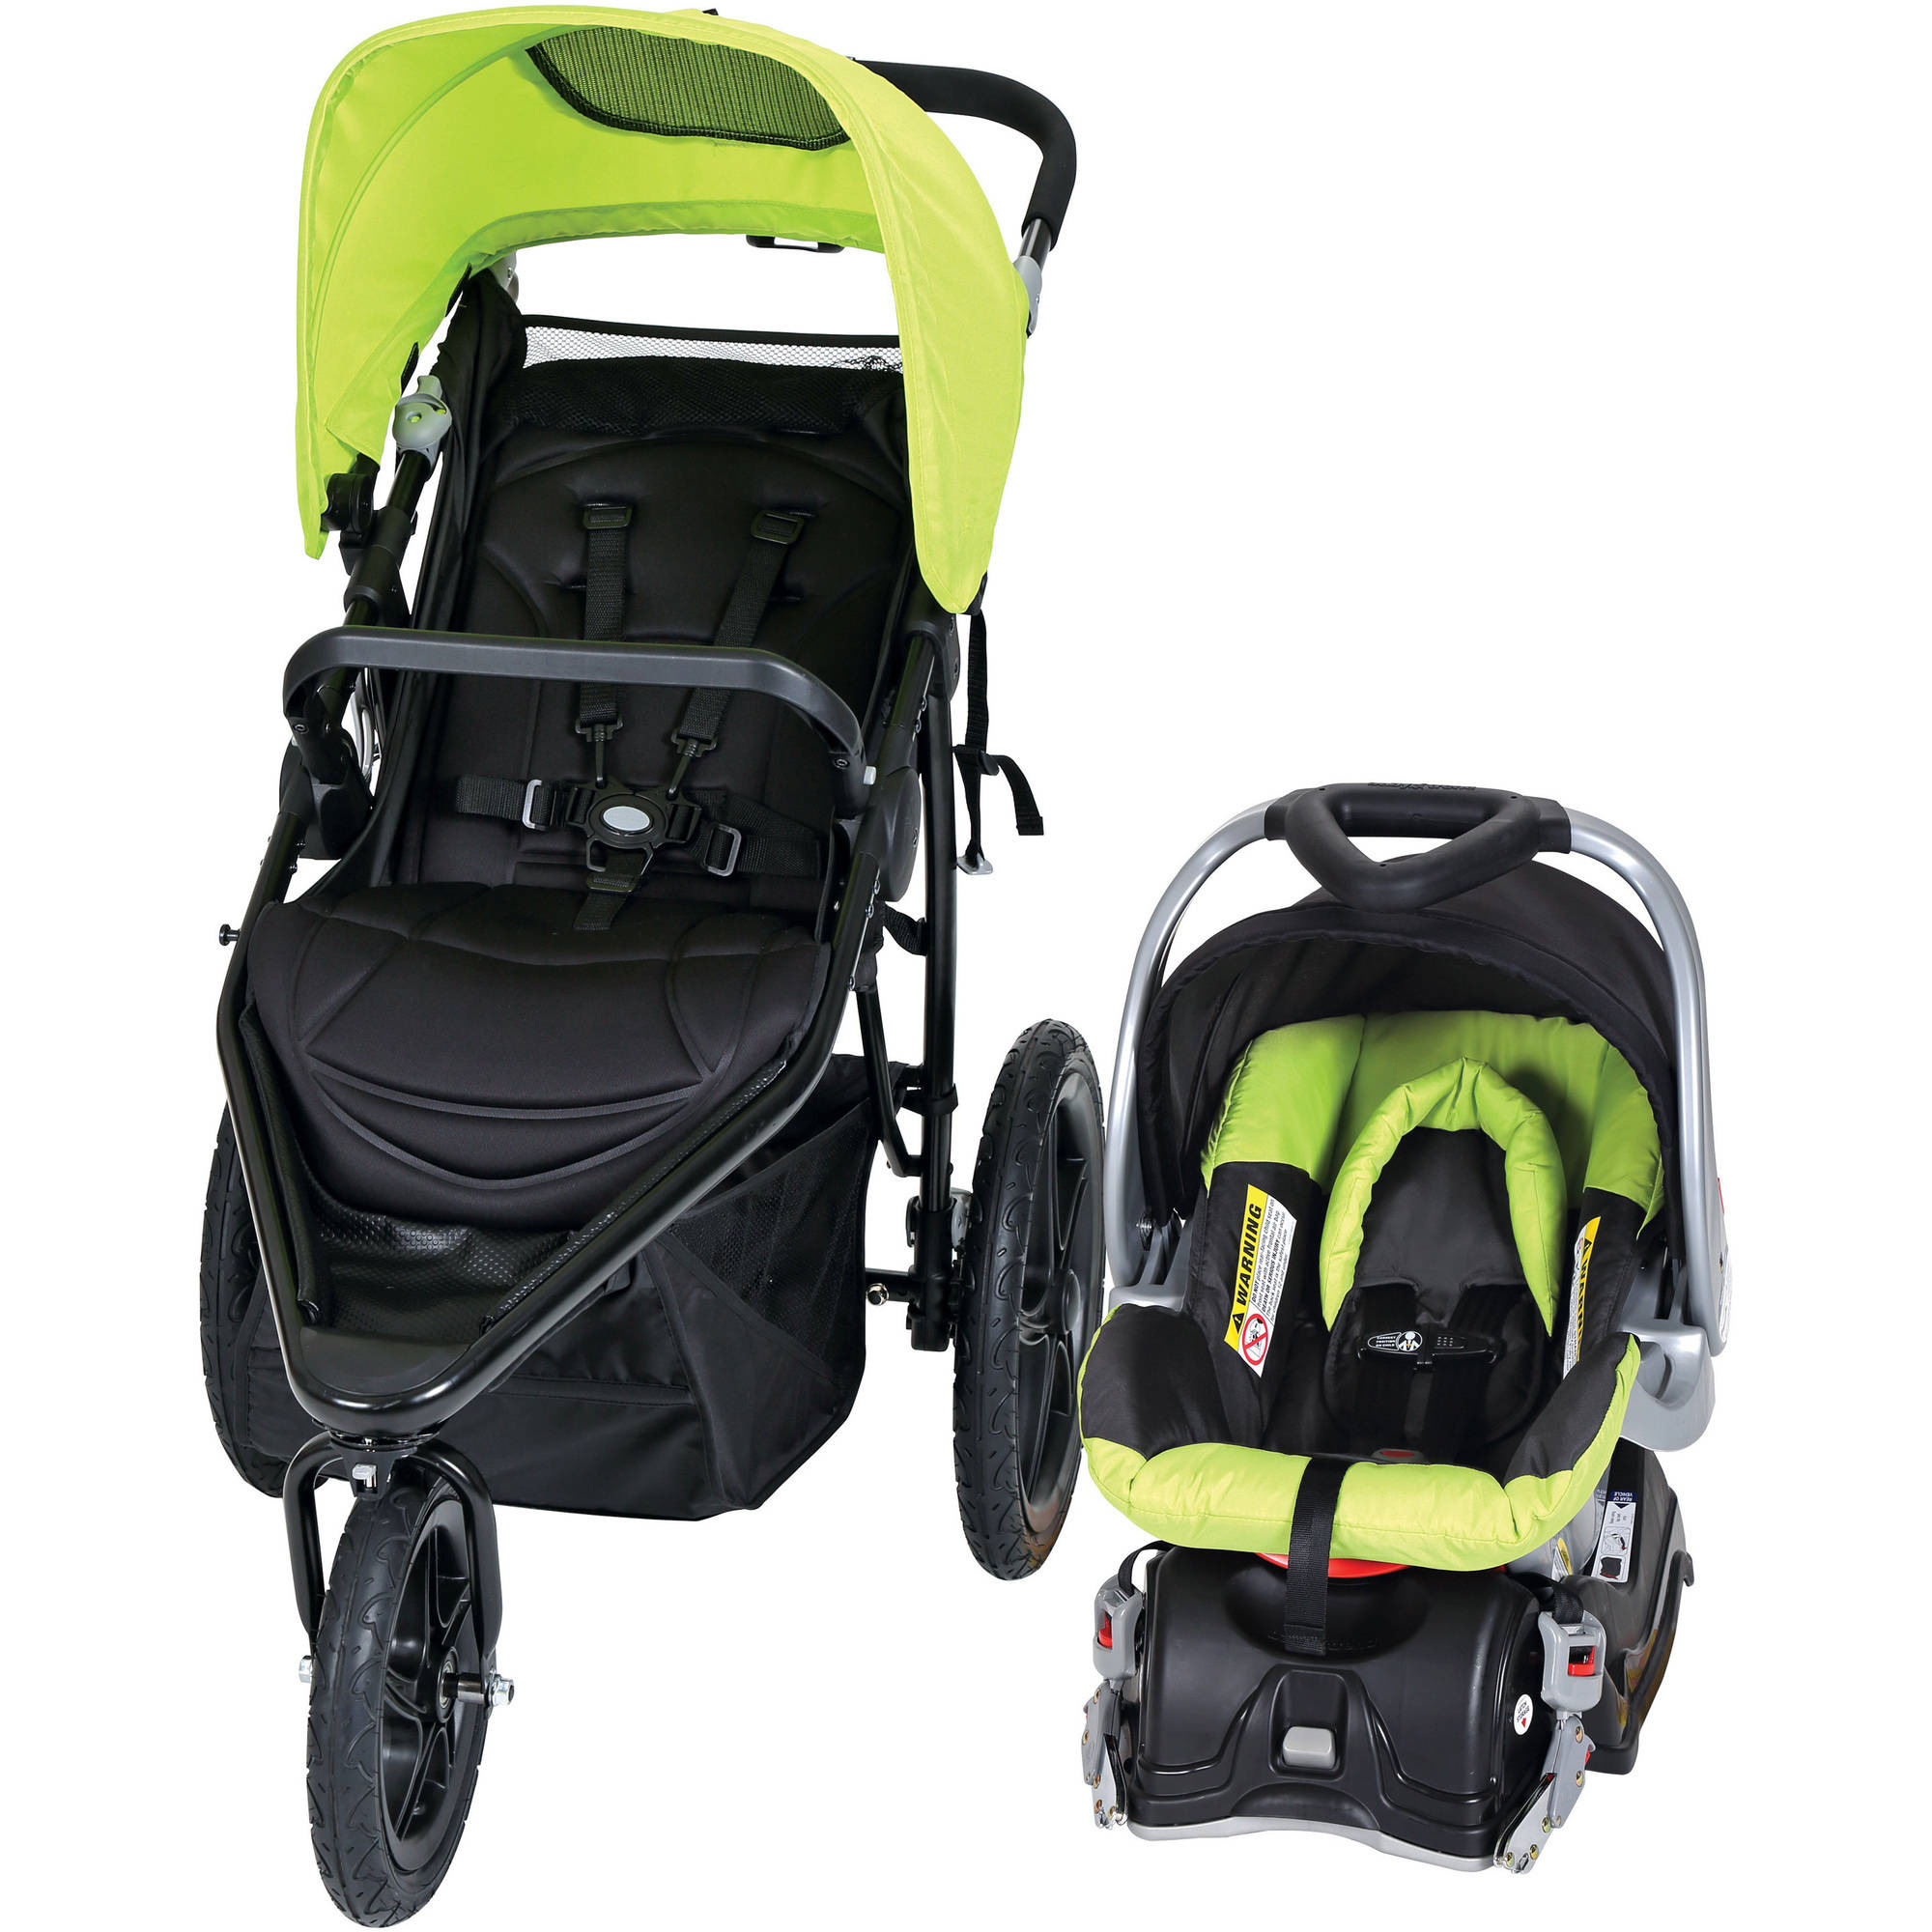 Baby Trend Stealth Jogger Travel System, Willow by Baby Trend